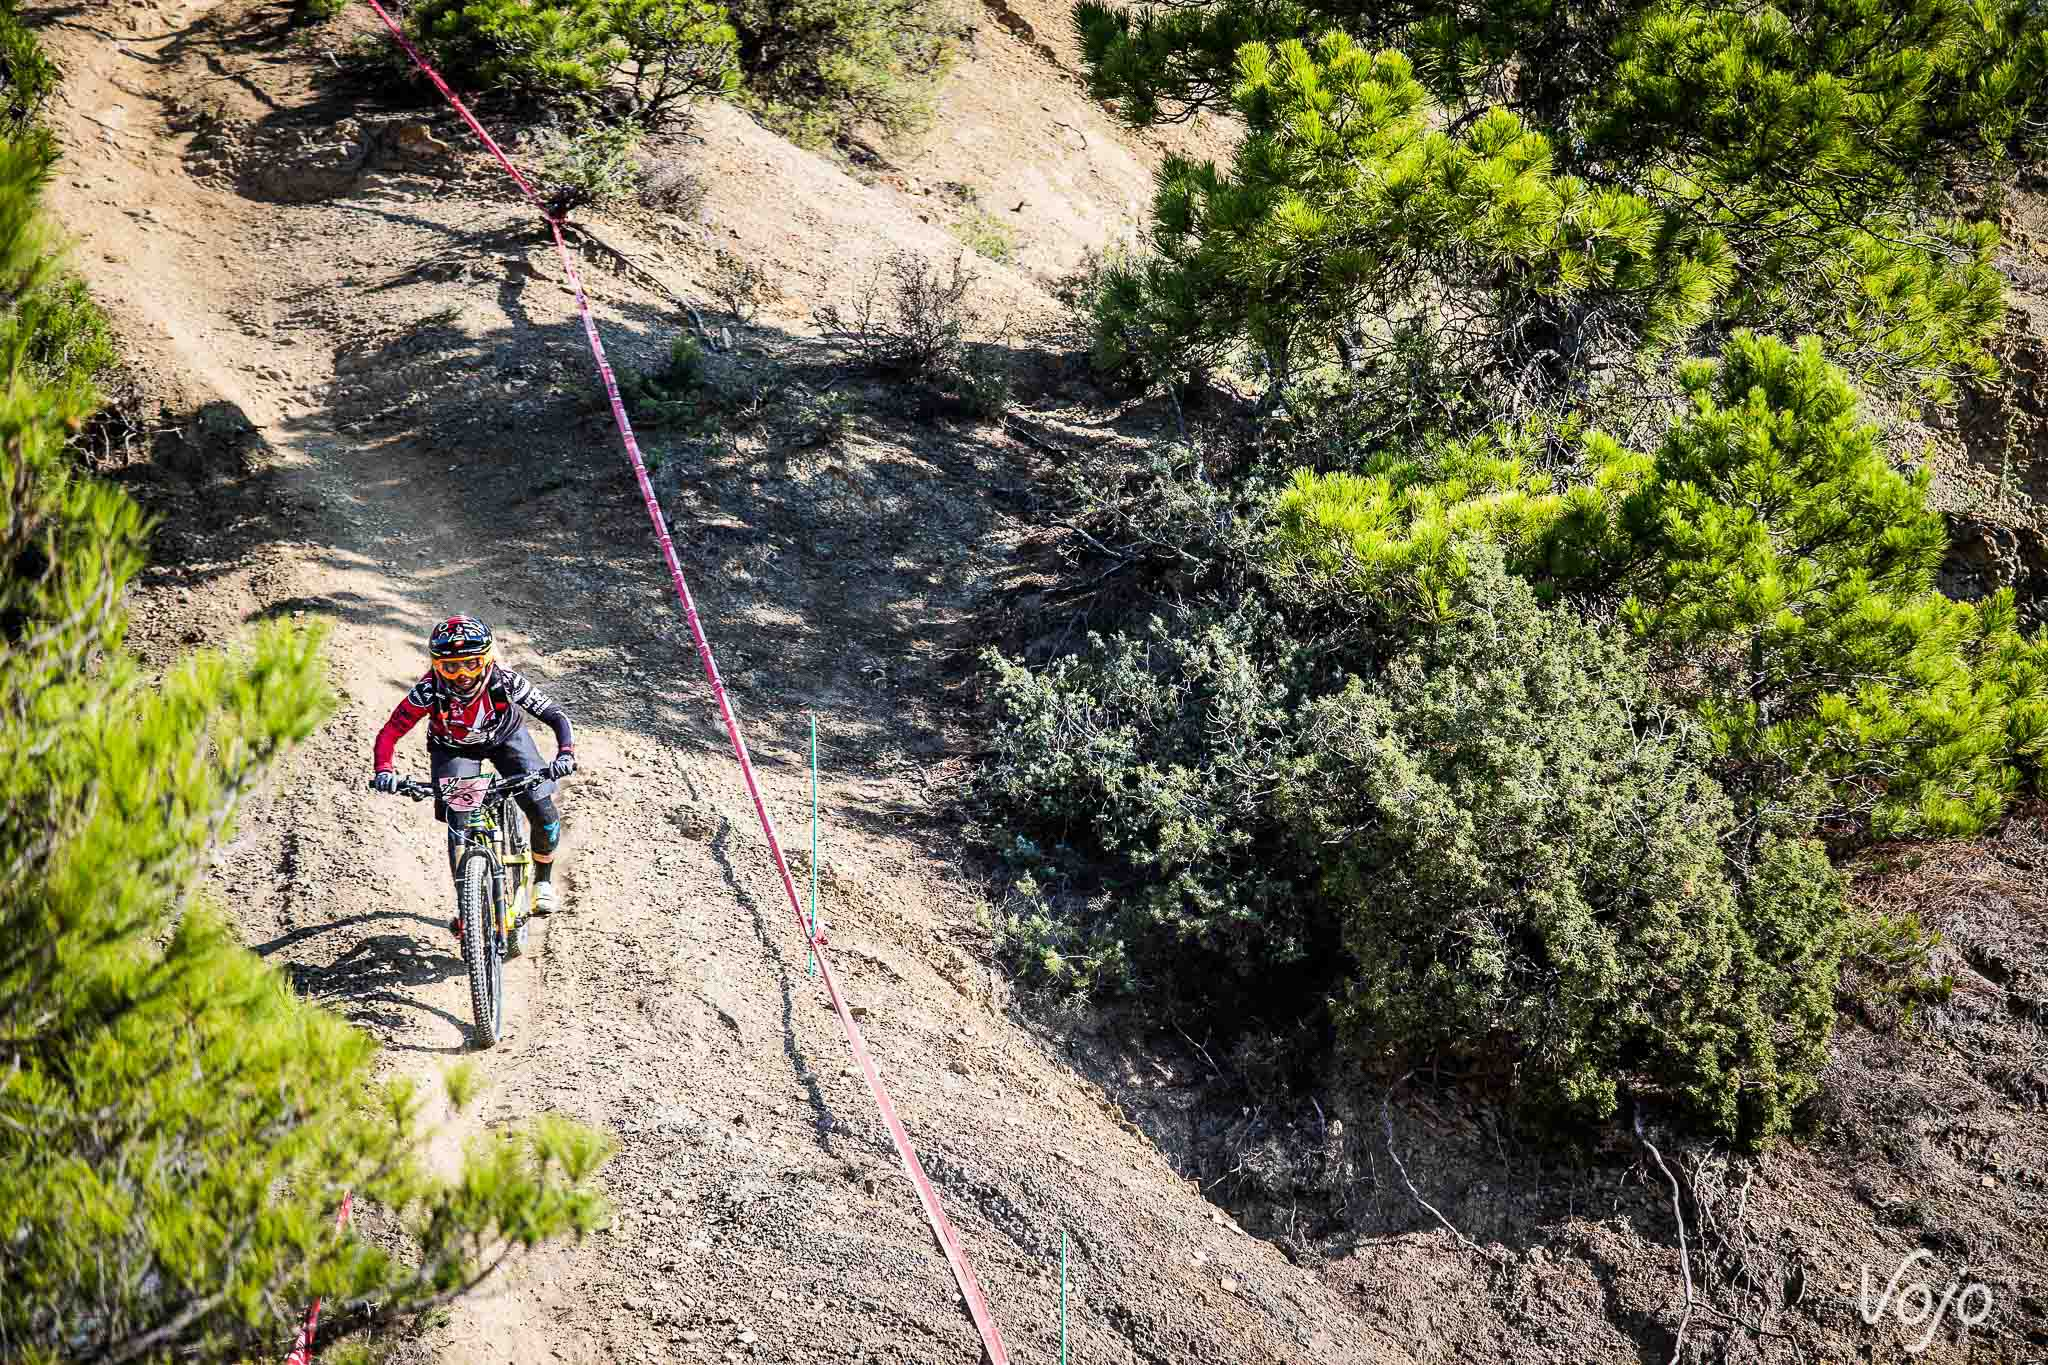 Enduro_World_Series_7_Spain_Ainsa_Zona_Zero_2015_Copyright_VojoMag-3-2